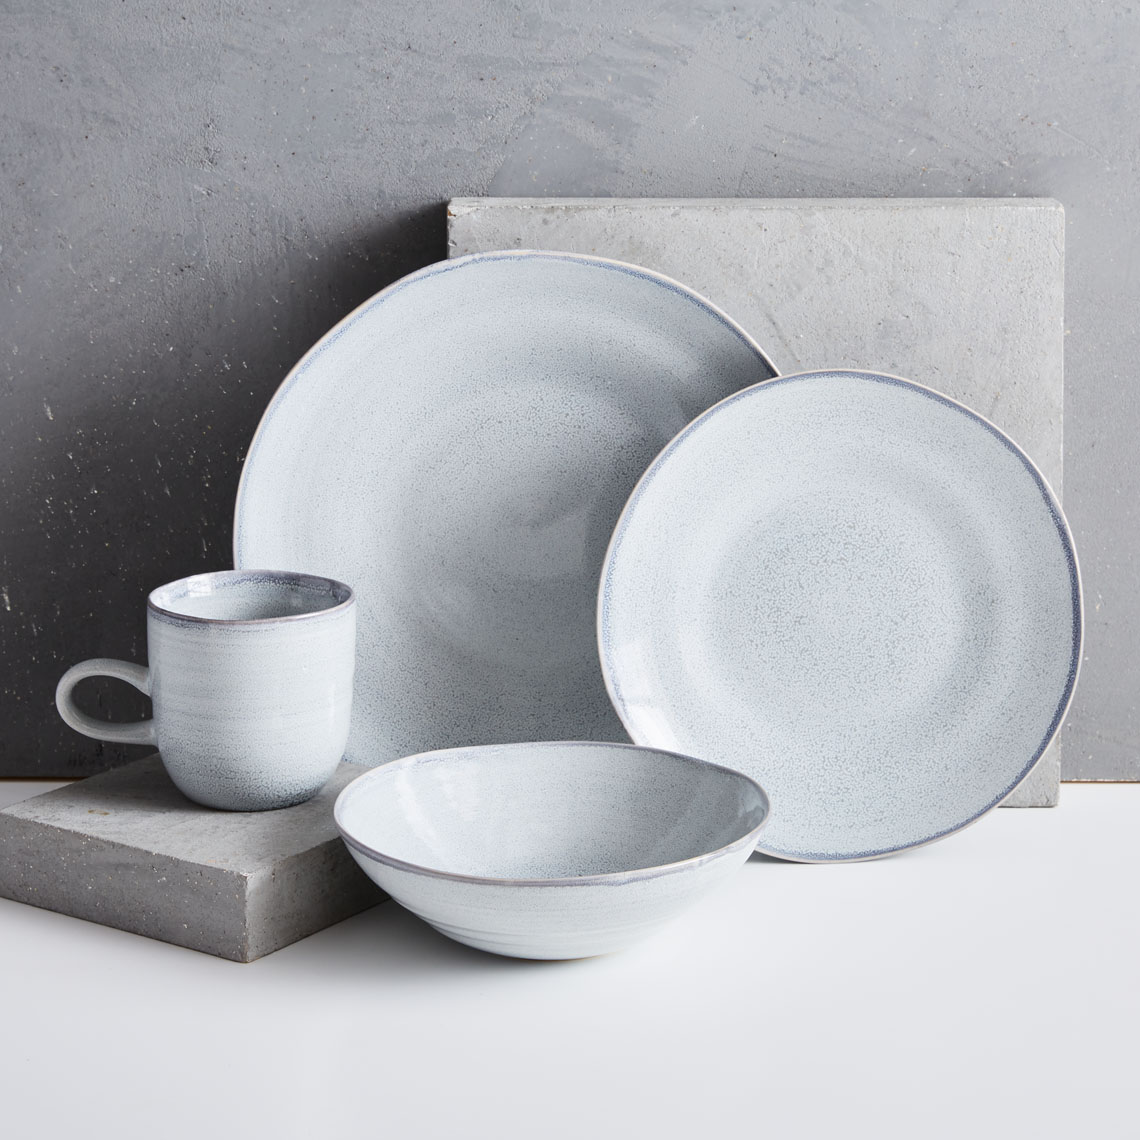 pip-simple-reactive-grey-speckle-dinnerware-v2-sp18-183